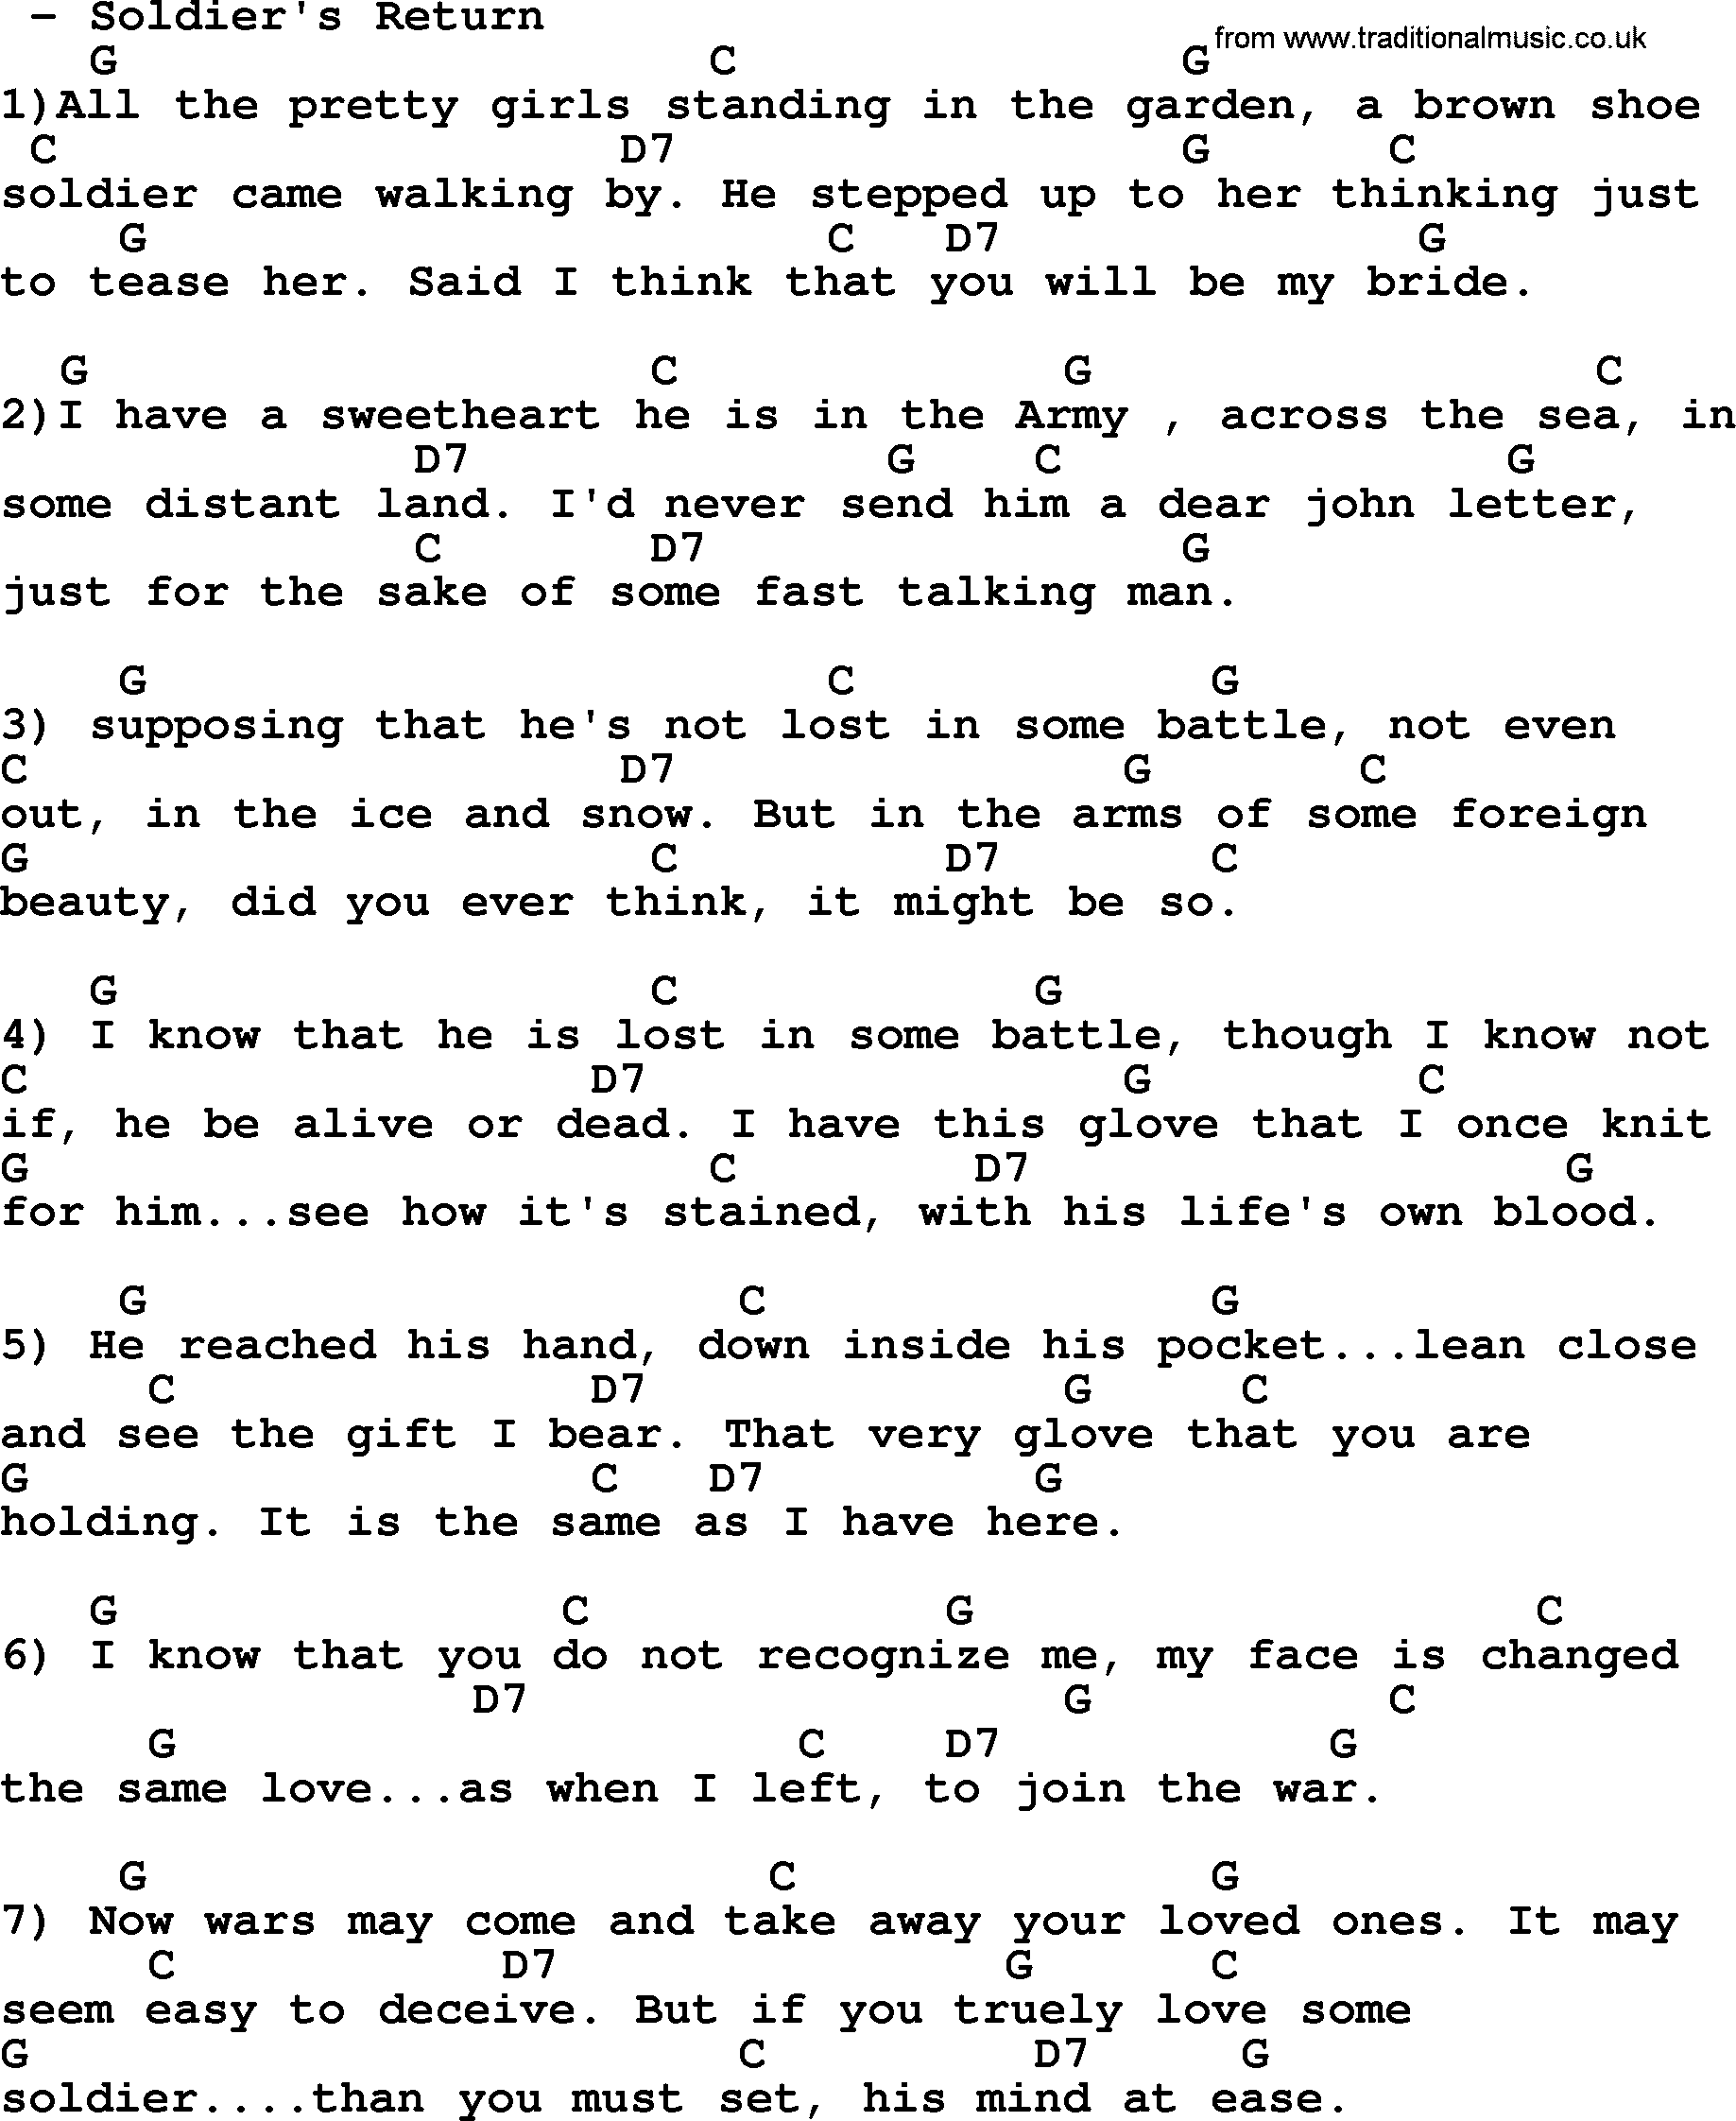 Soldiers return bluegrass lyrics with chords bluegrass song soldiers return lyrics and chords hexwebz Choice Image